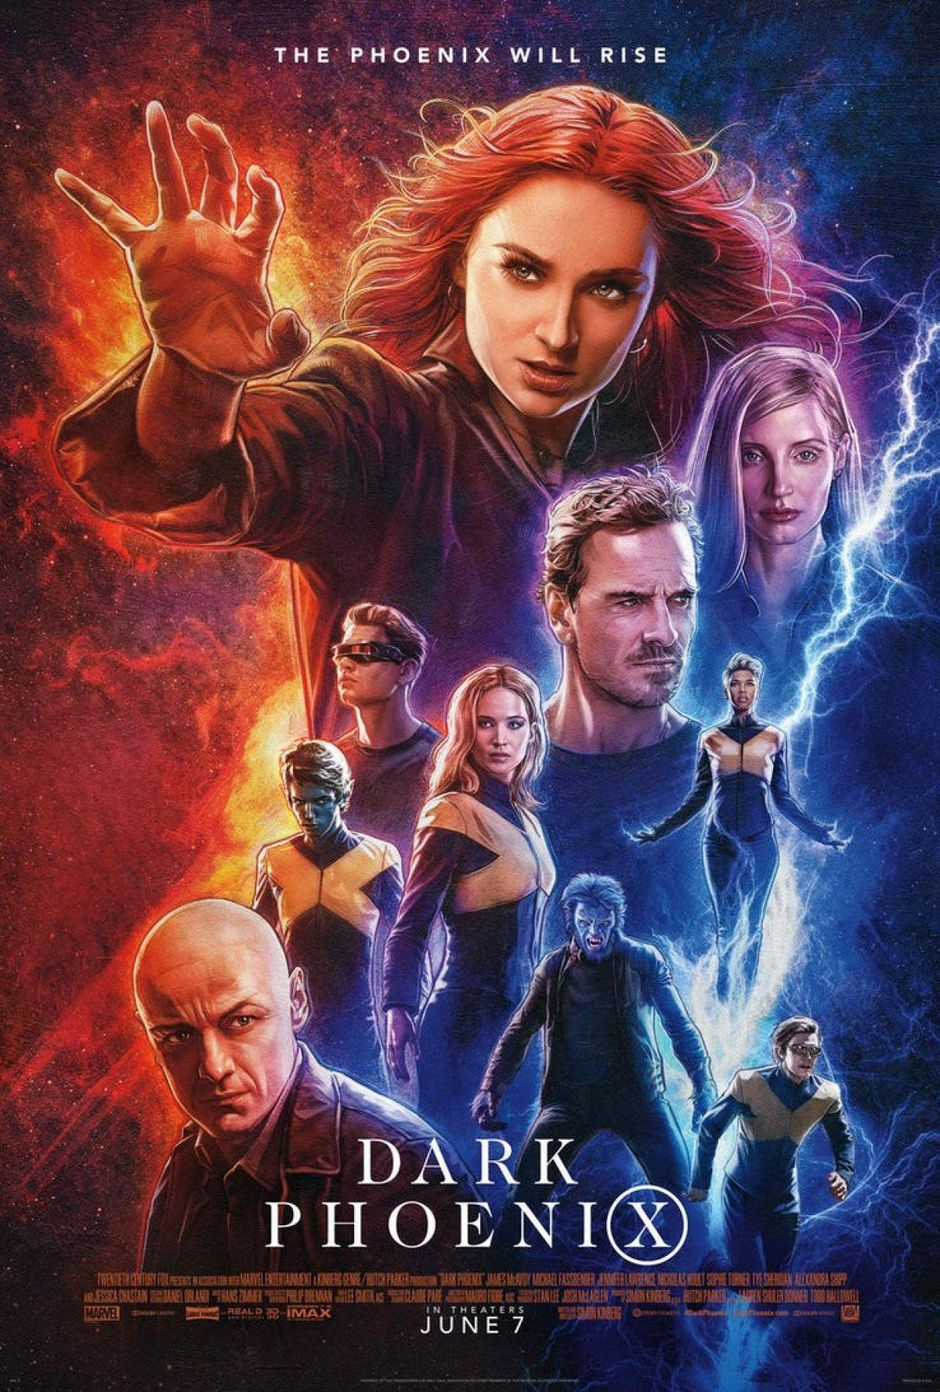 x-men-dark-phoenix-new-poster-1200-1777-81-s